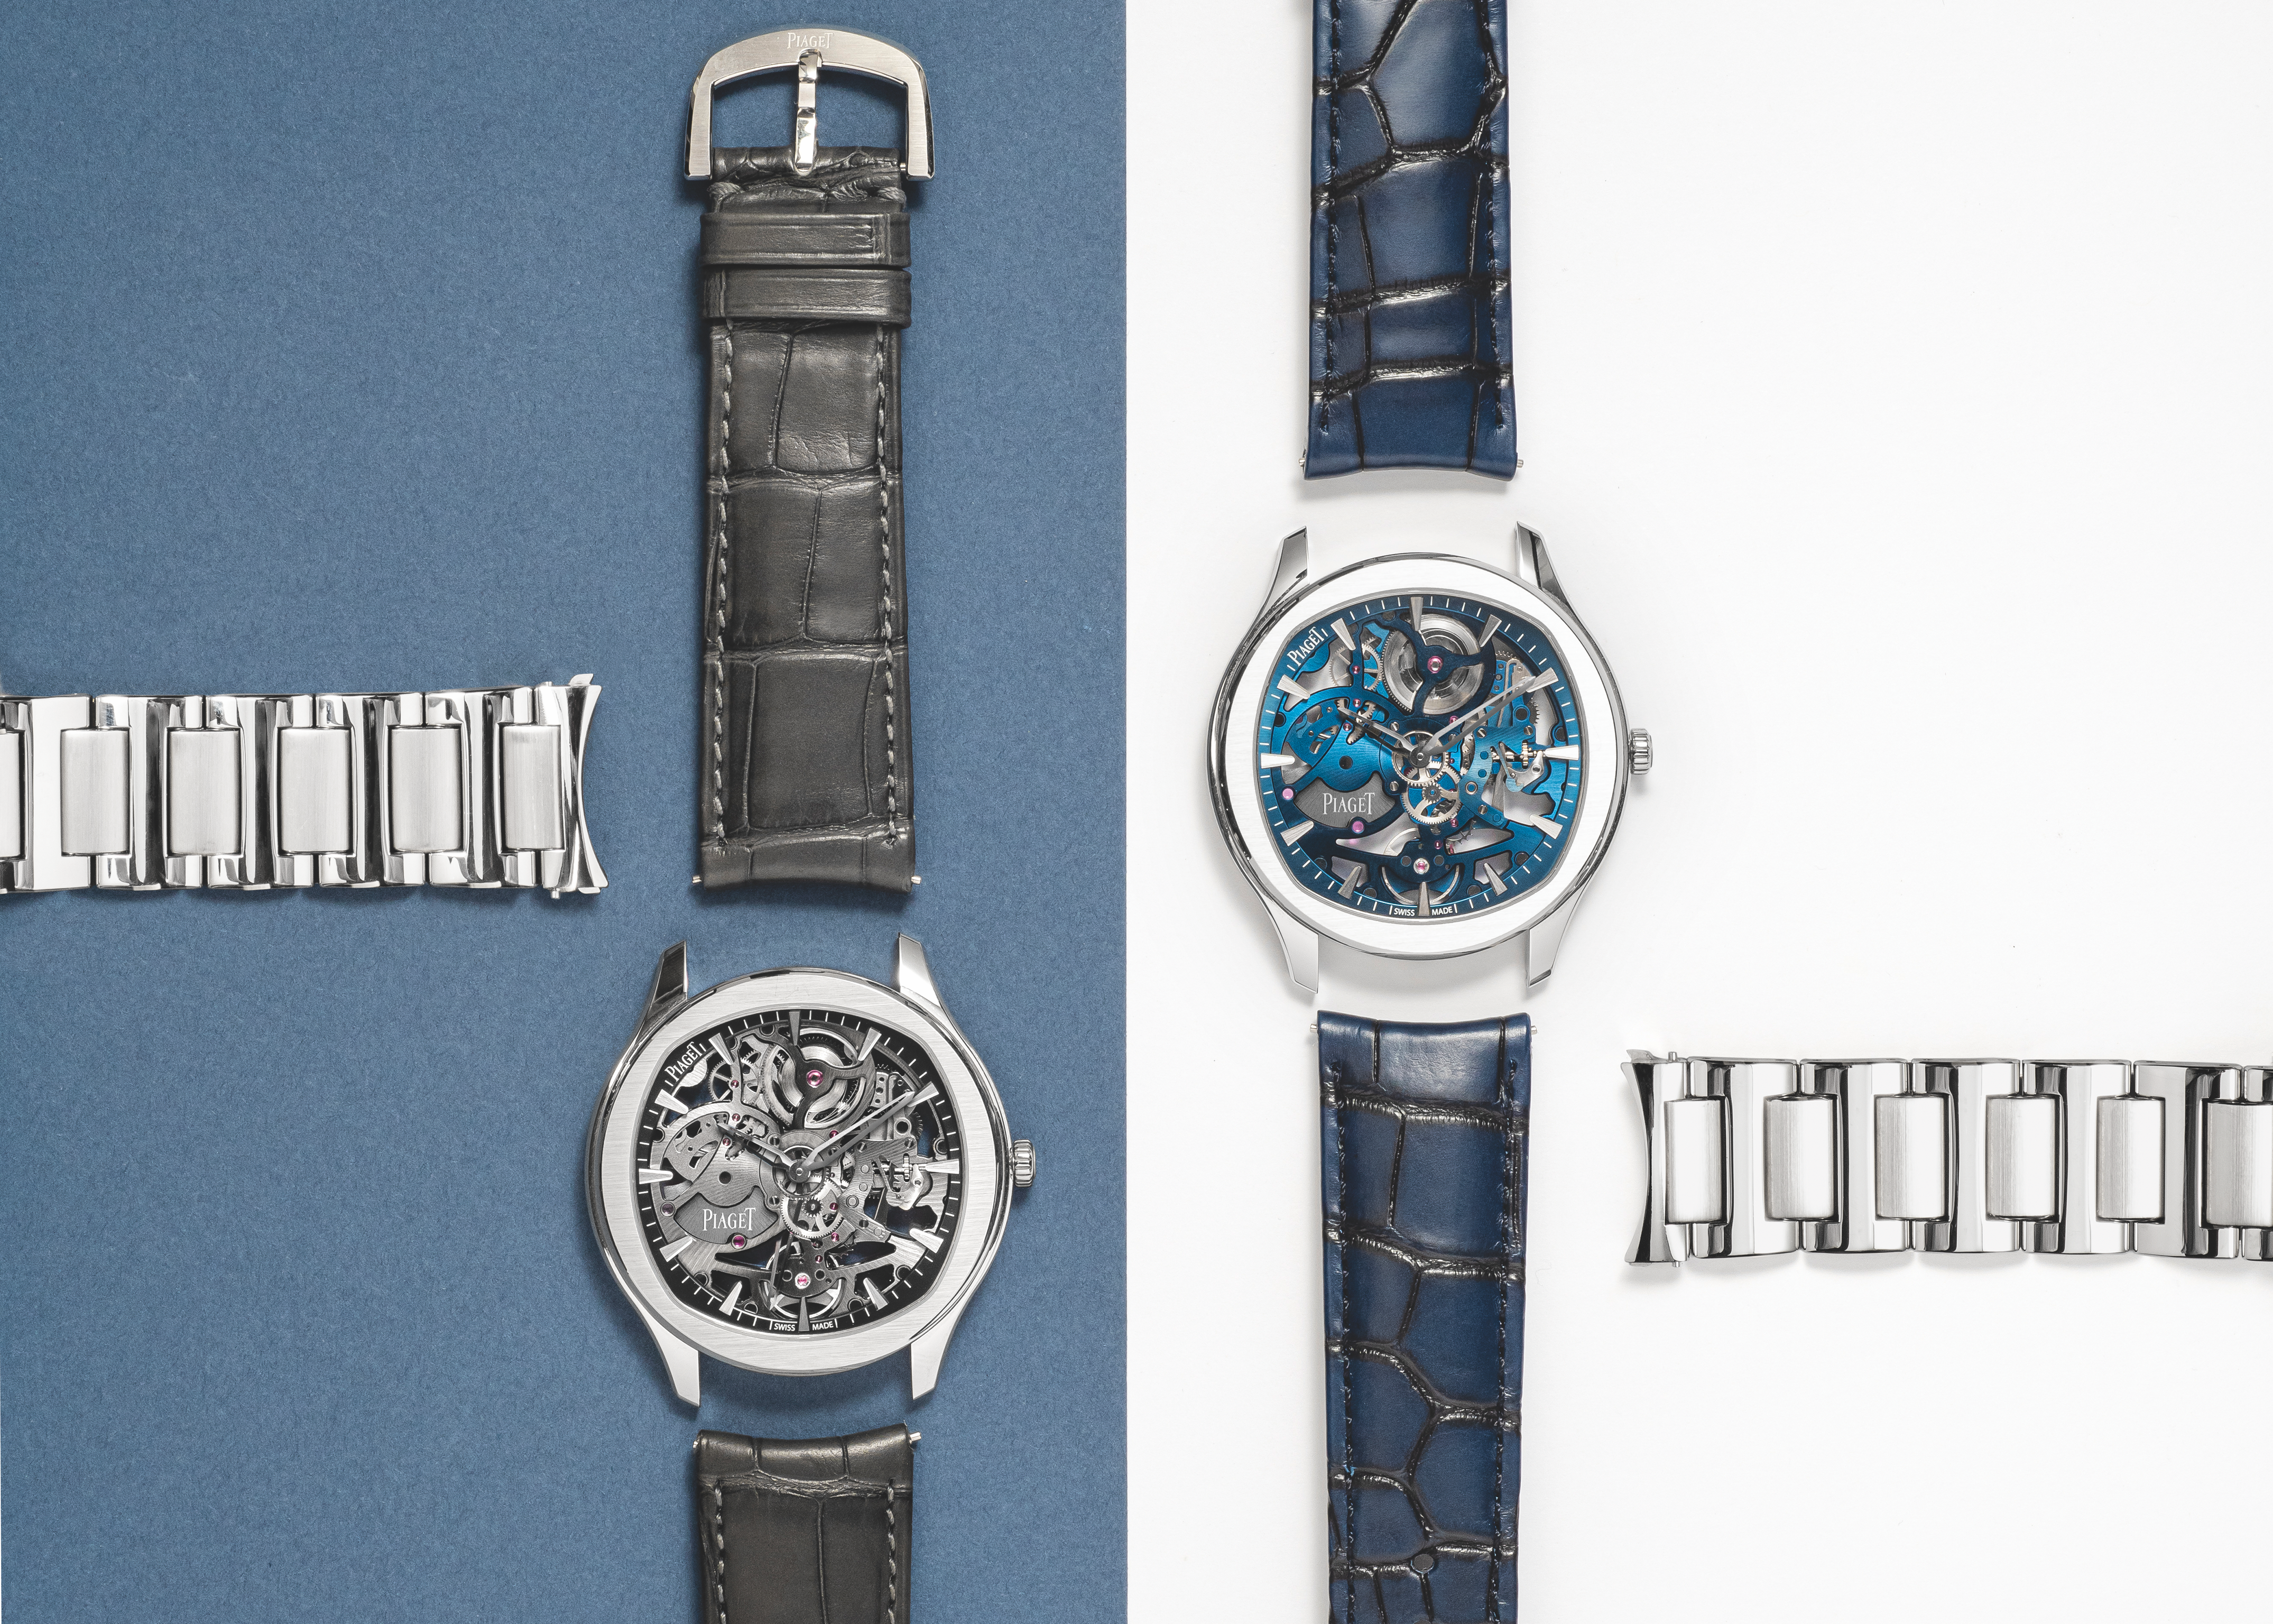 Piaget introduces the Polo Skeleton